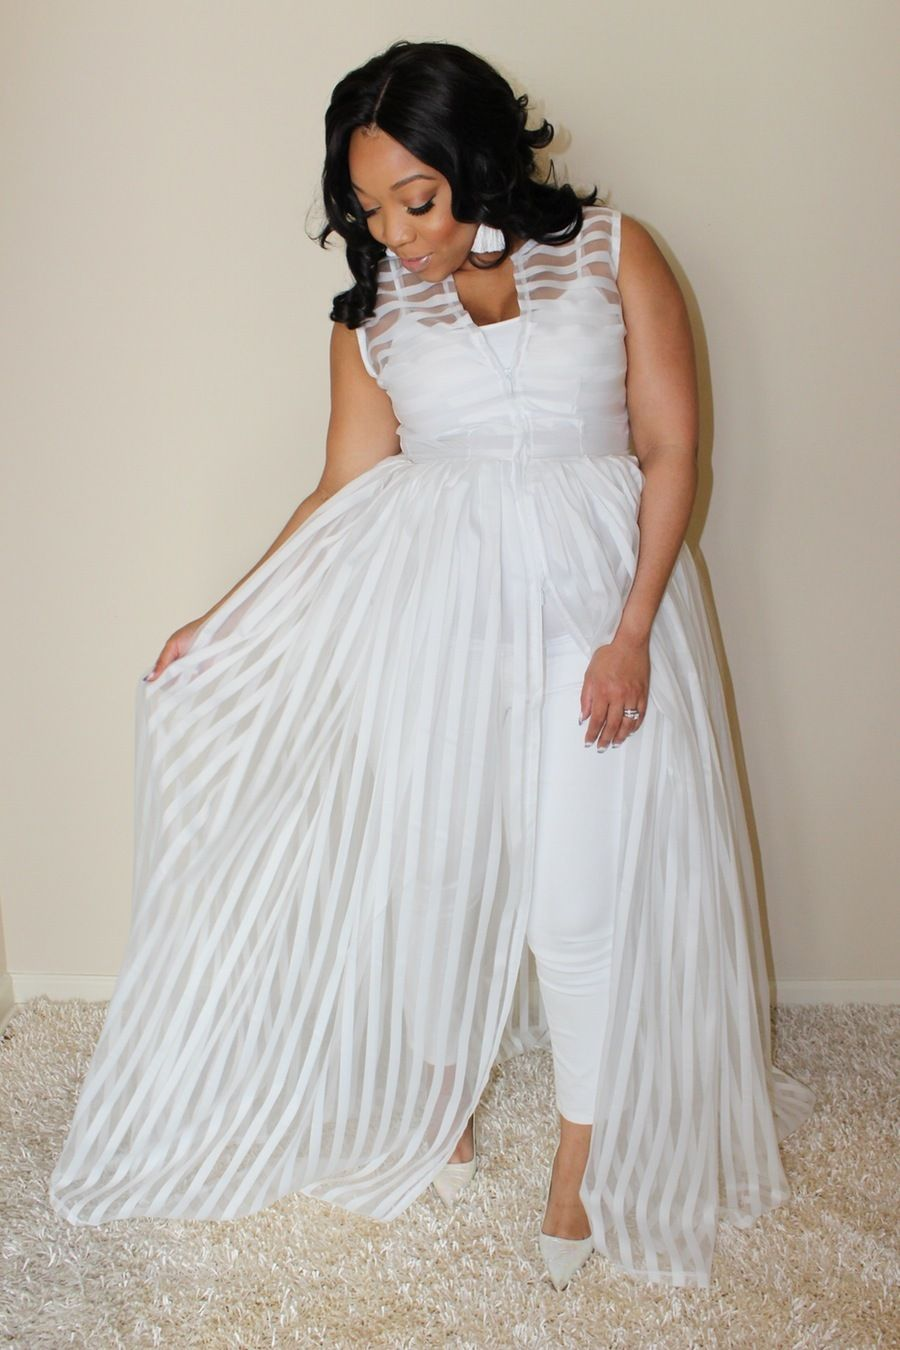 YES white dress with pants! I do need this and have to have it! This designer, Joni Marie Ross, does indeed do plus sizes and I have to add this to the mix.  Designer Spotlight: Currently Obsessed with Joni Marie Ross http://thecurvyfashionista.com/2016/04/designer-spotlight-currently-obsessed-with-joni-marie-ross/